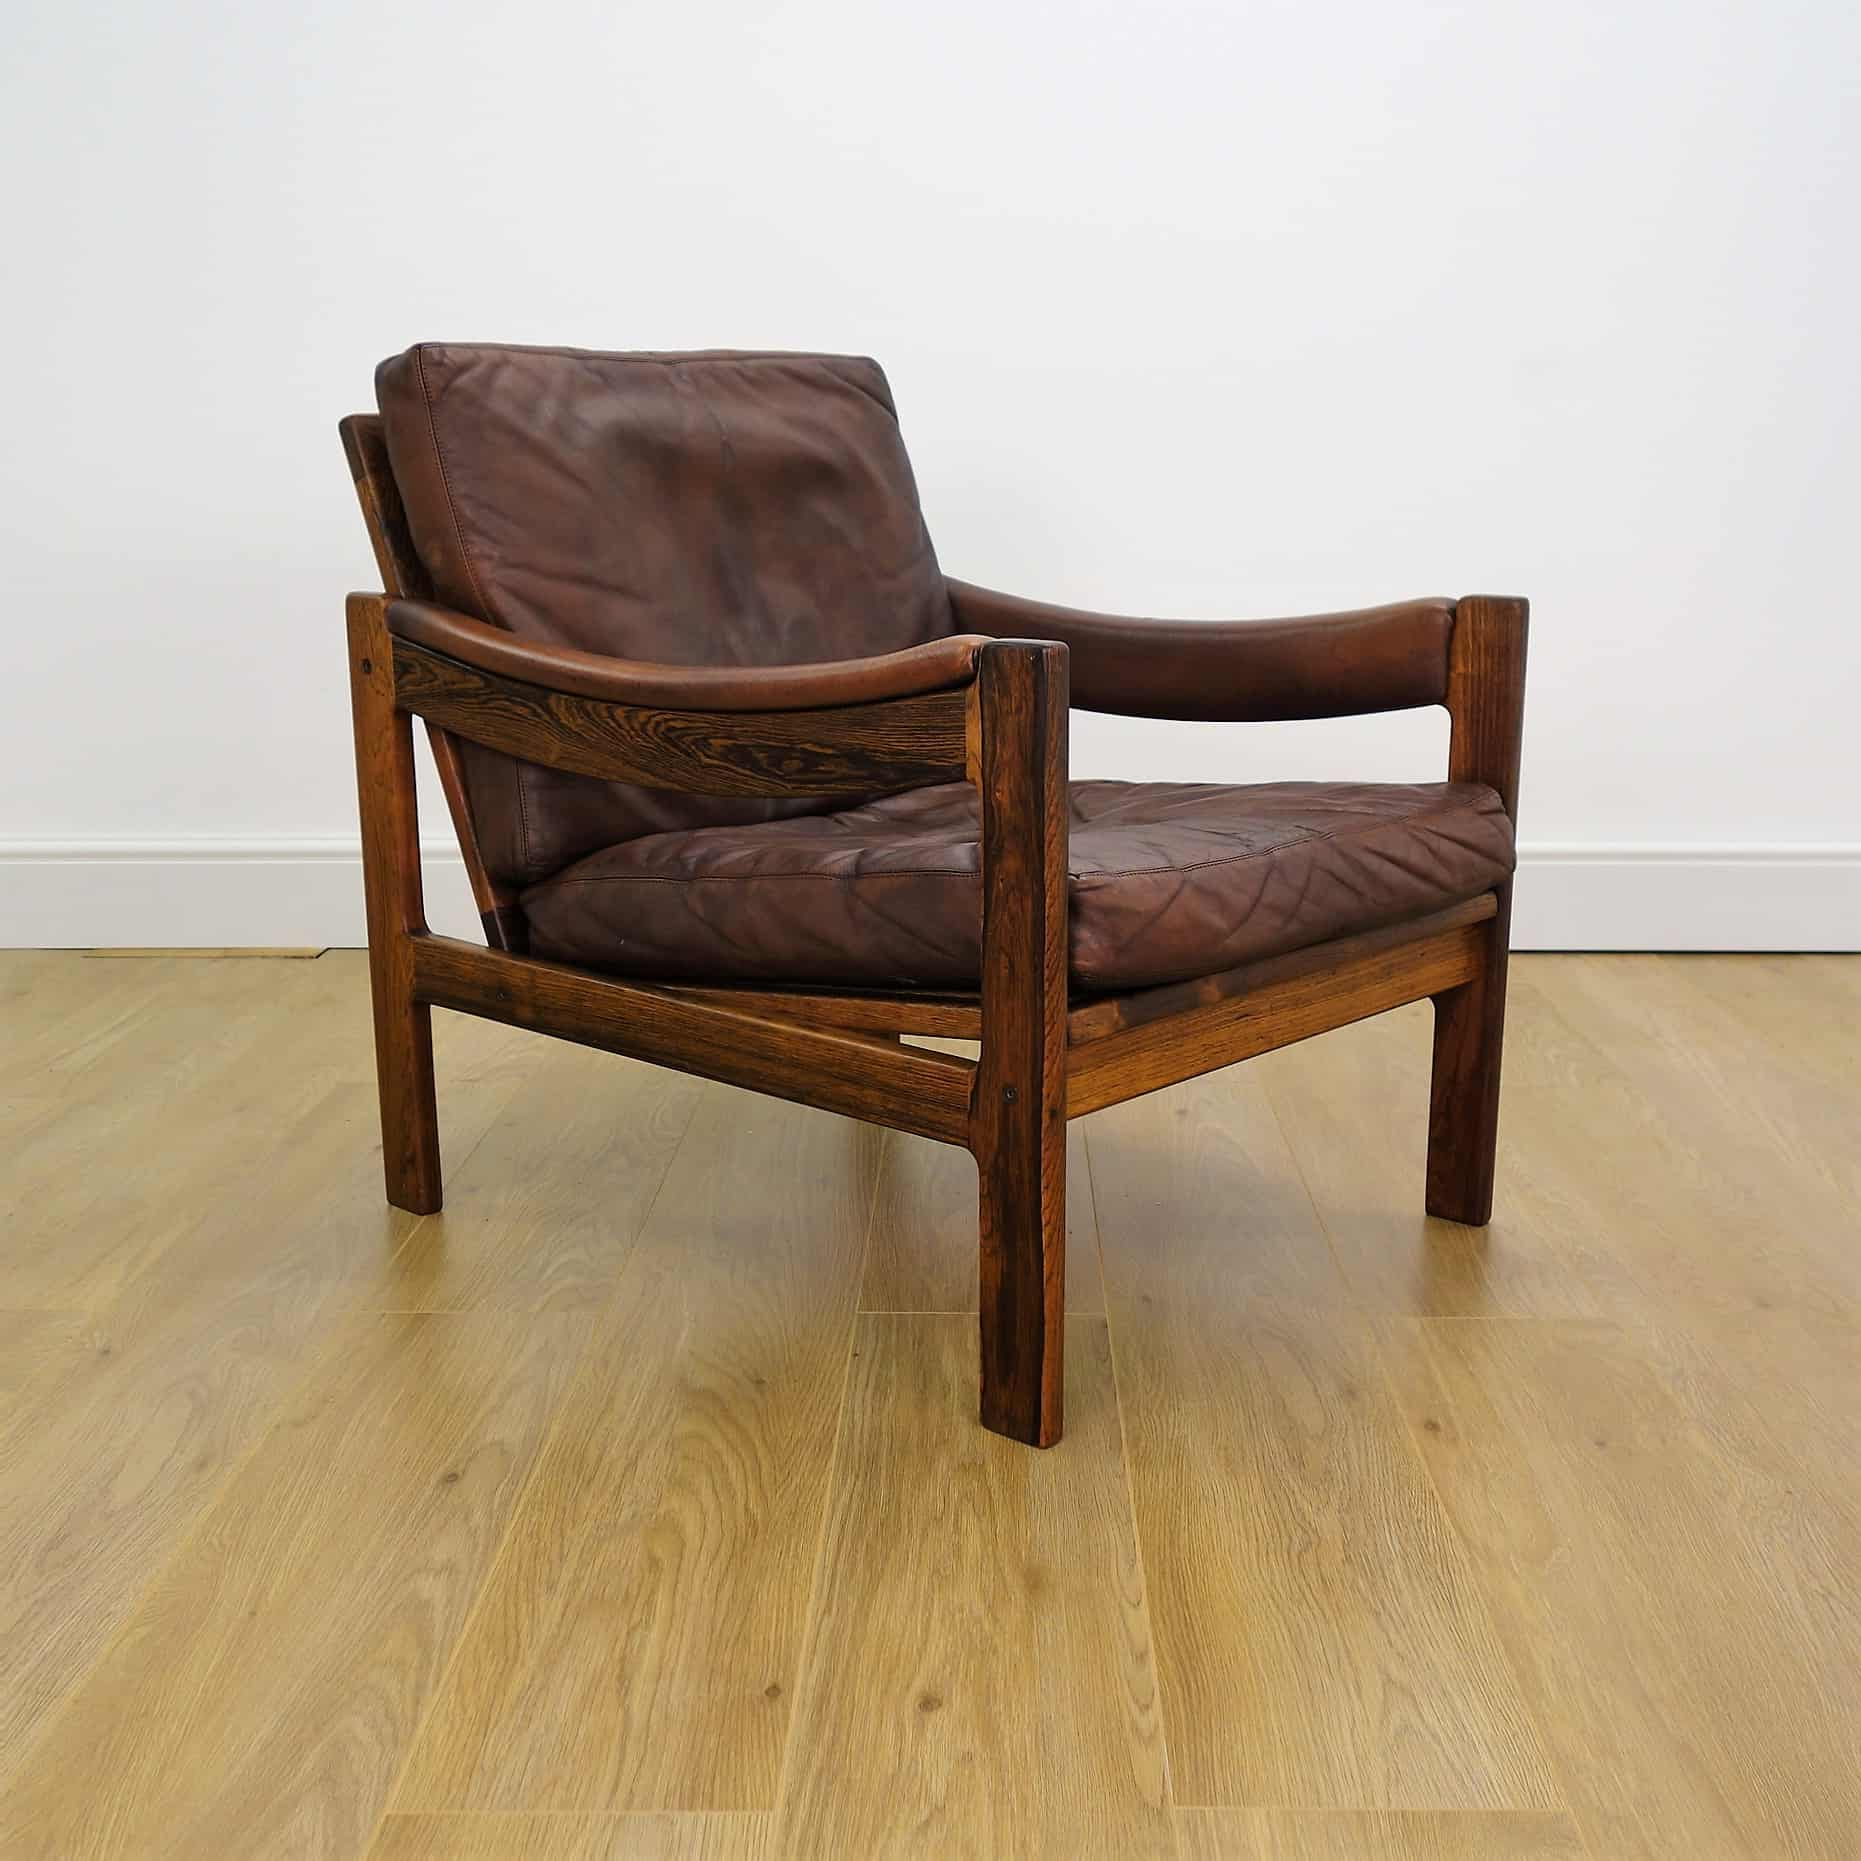 60s Danish rosewood and leather armchair